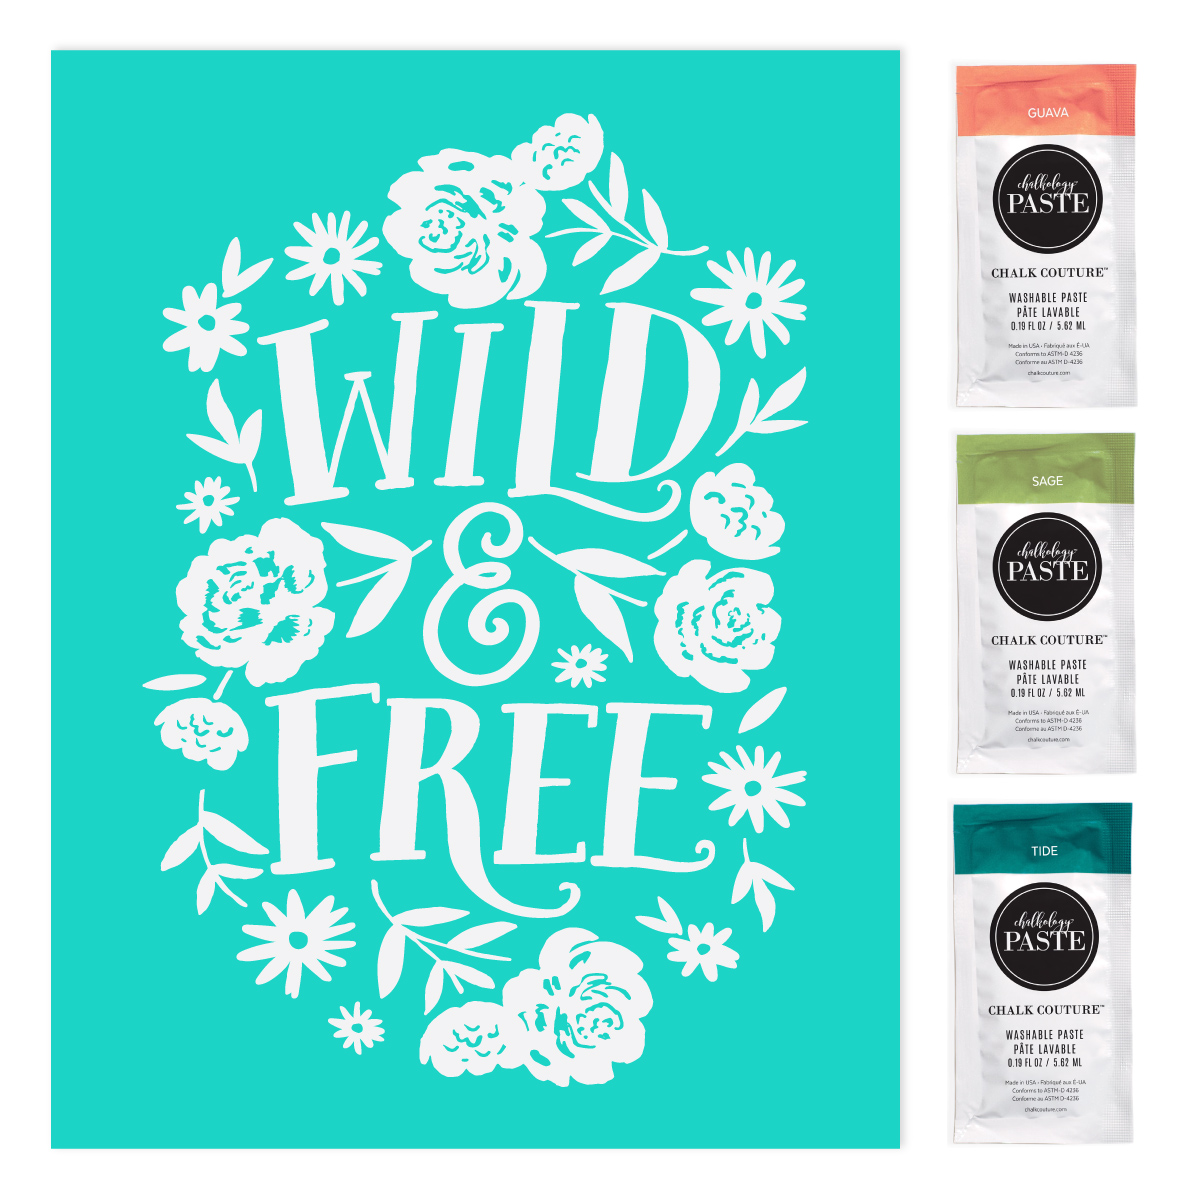 Tip Tuesday on a Wednesday: How to Be Wild and Free with Chalk Couture's Club Couture.